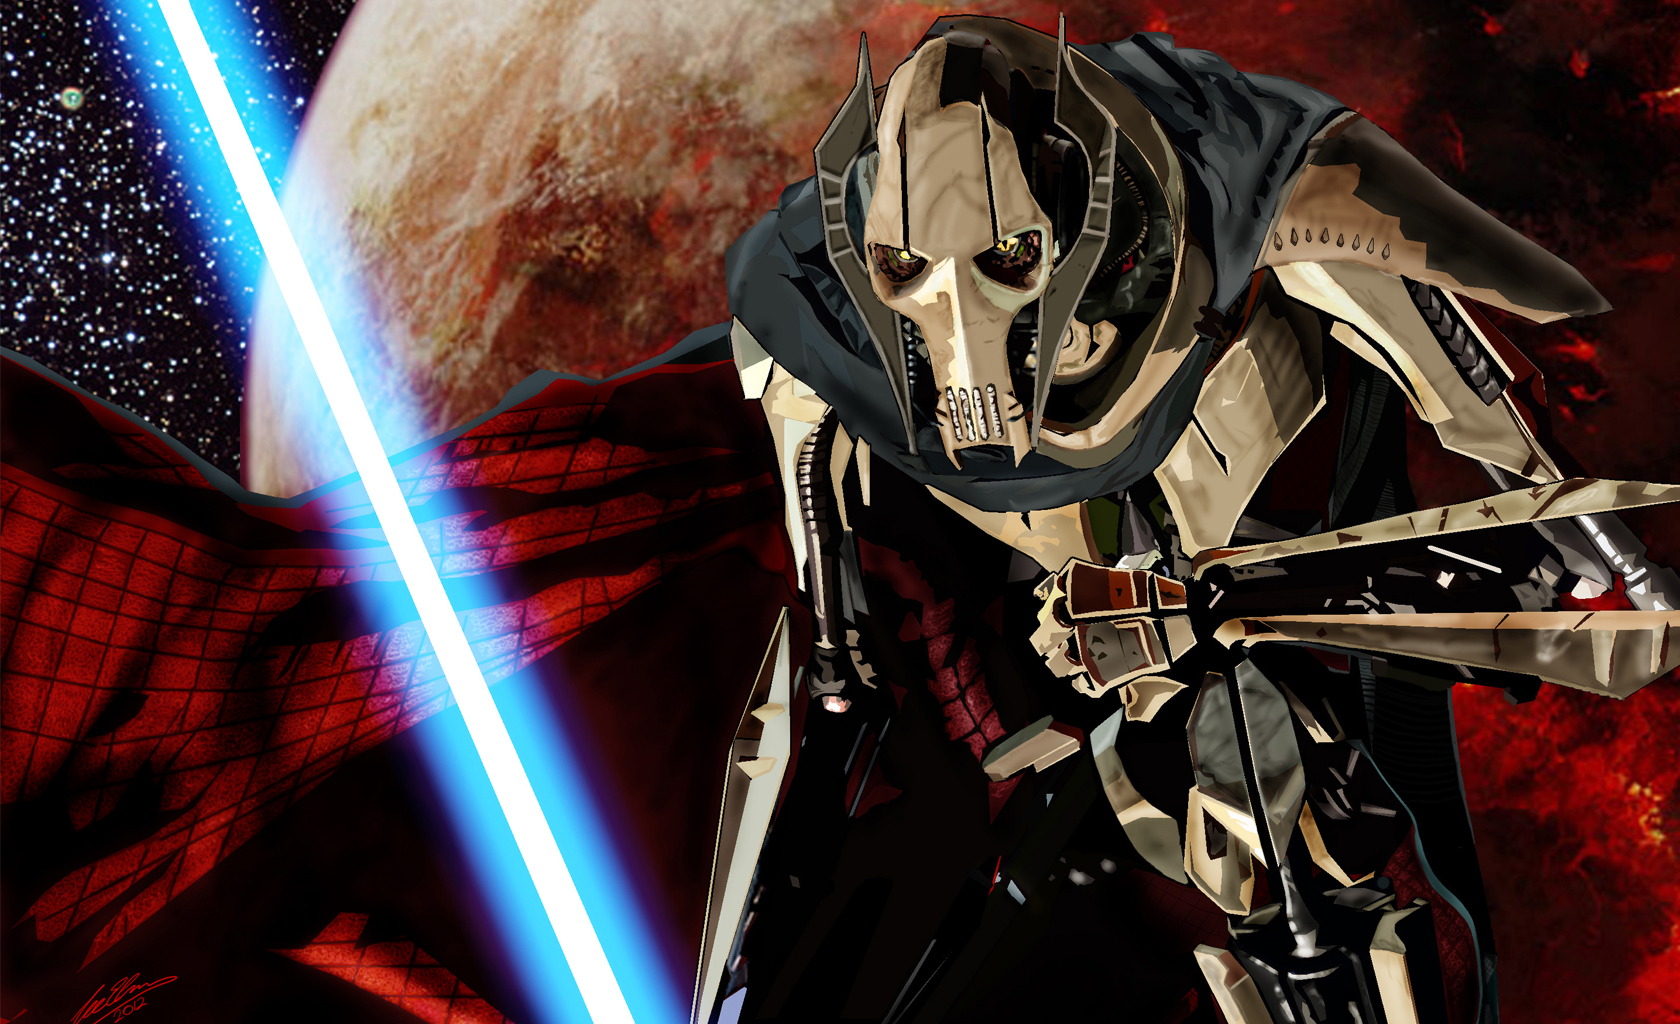 grievous_wallpaper_by_lelmer77-d5bxq66.jpg